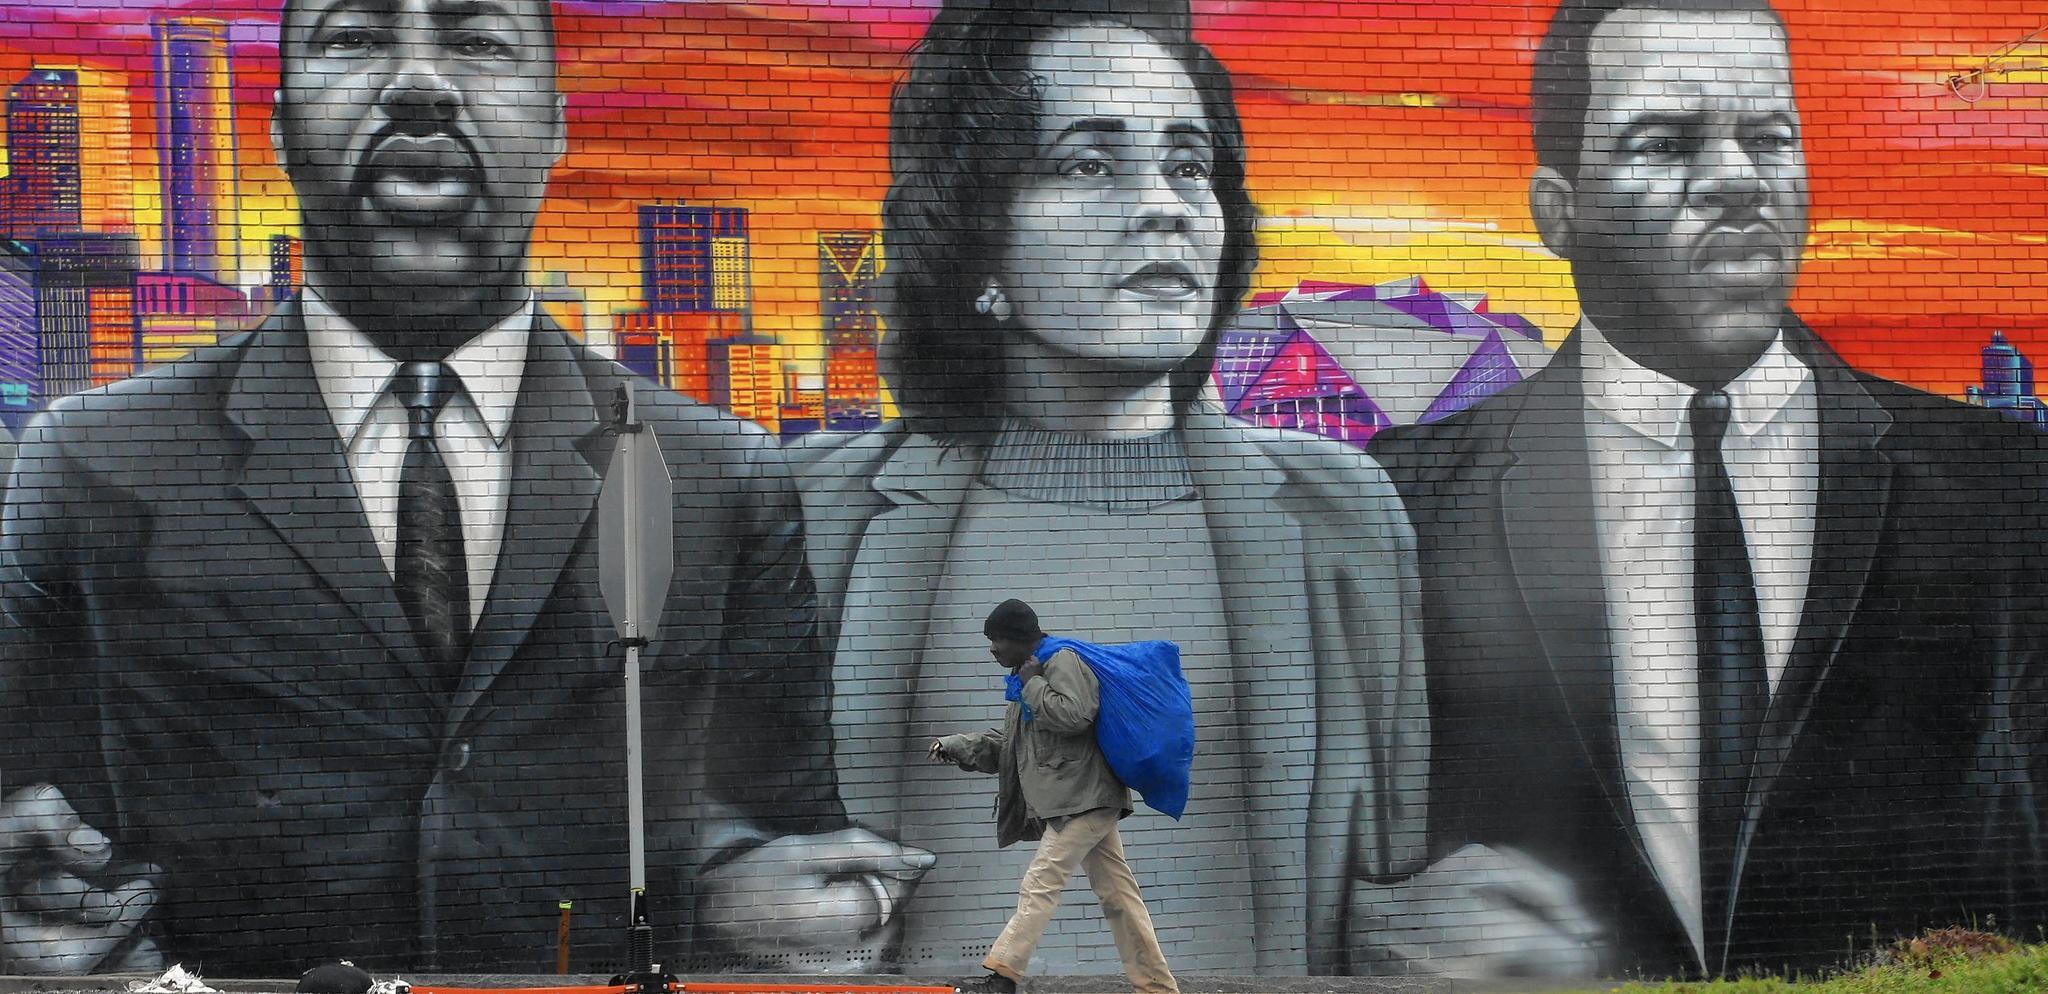 Atlanta's public art collection grows, with murals inspired by civil rights, social justice — and the Super Bowl